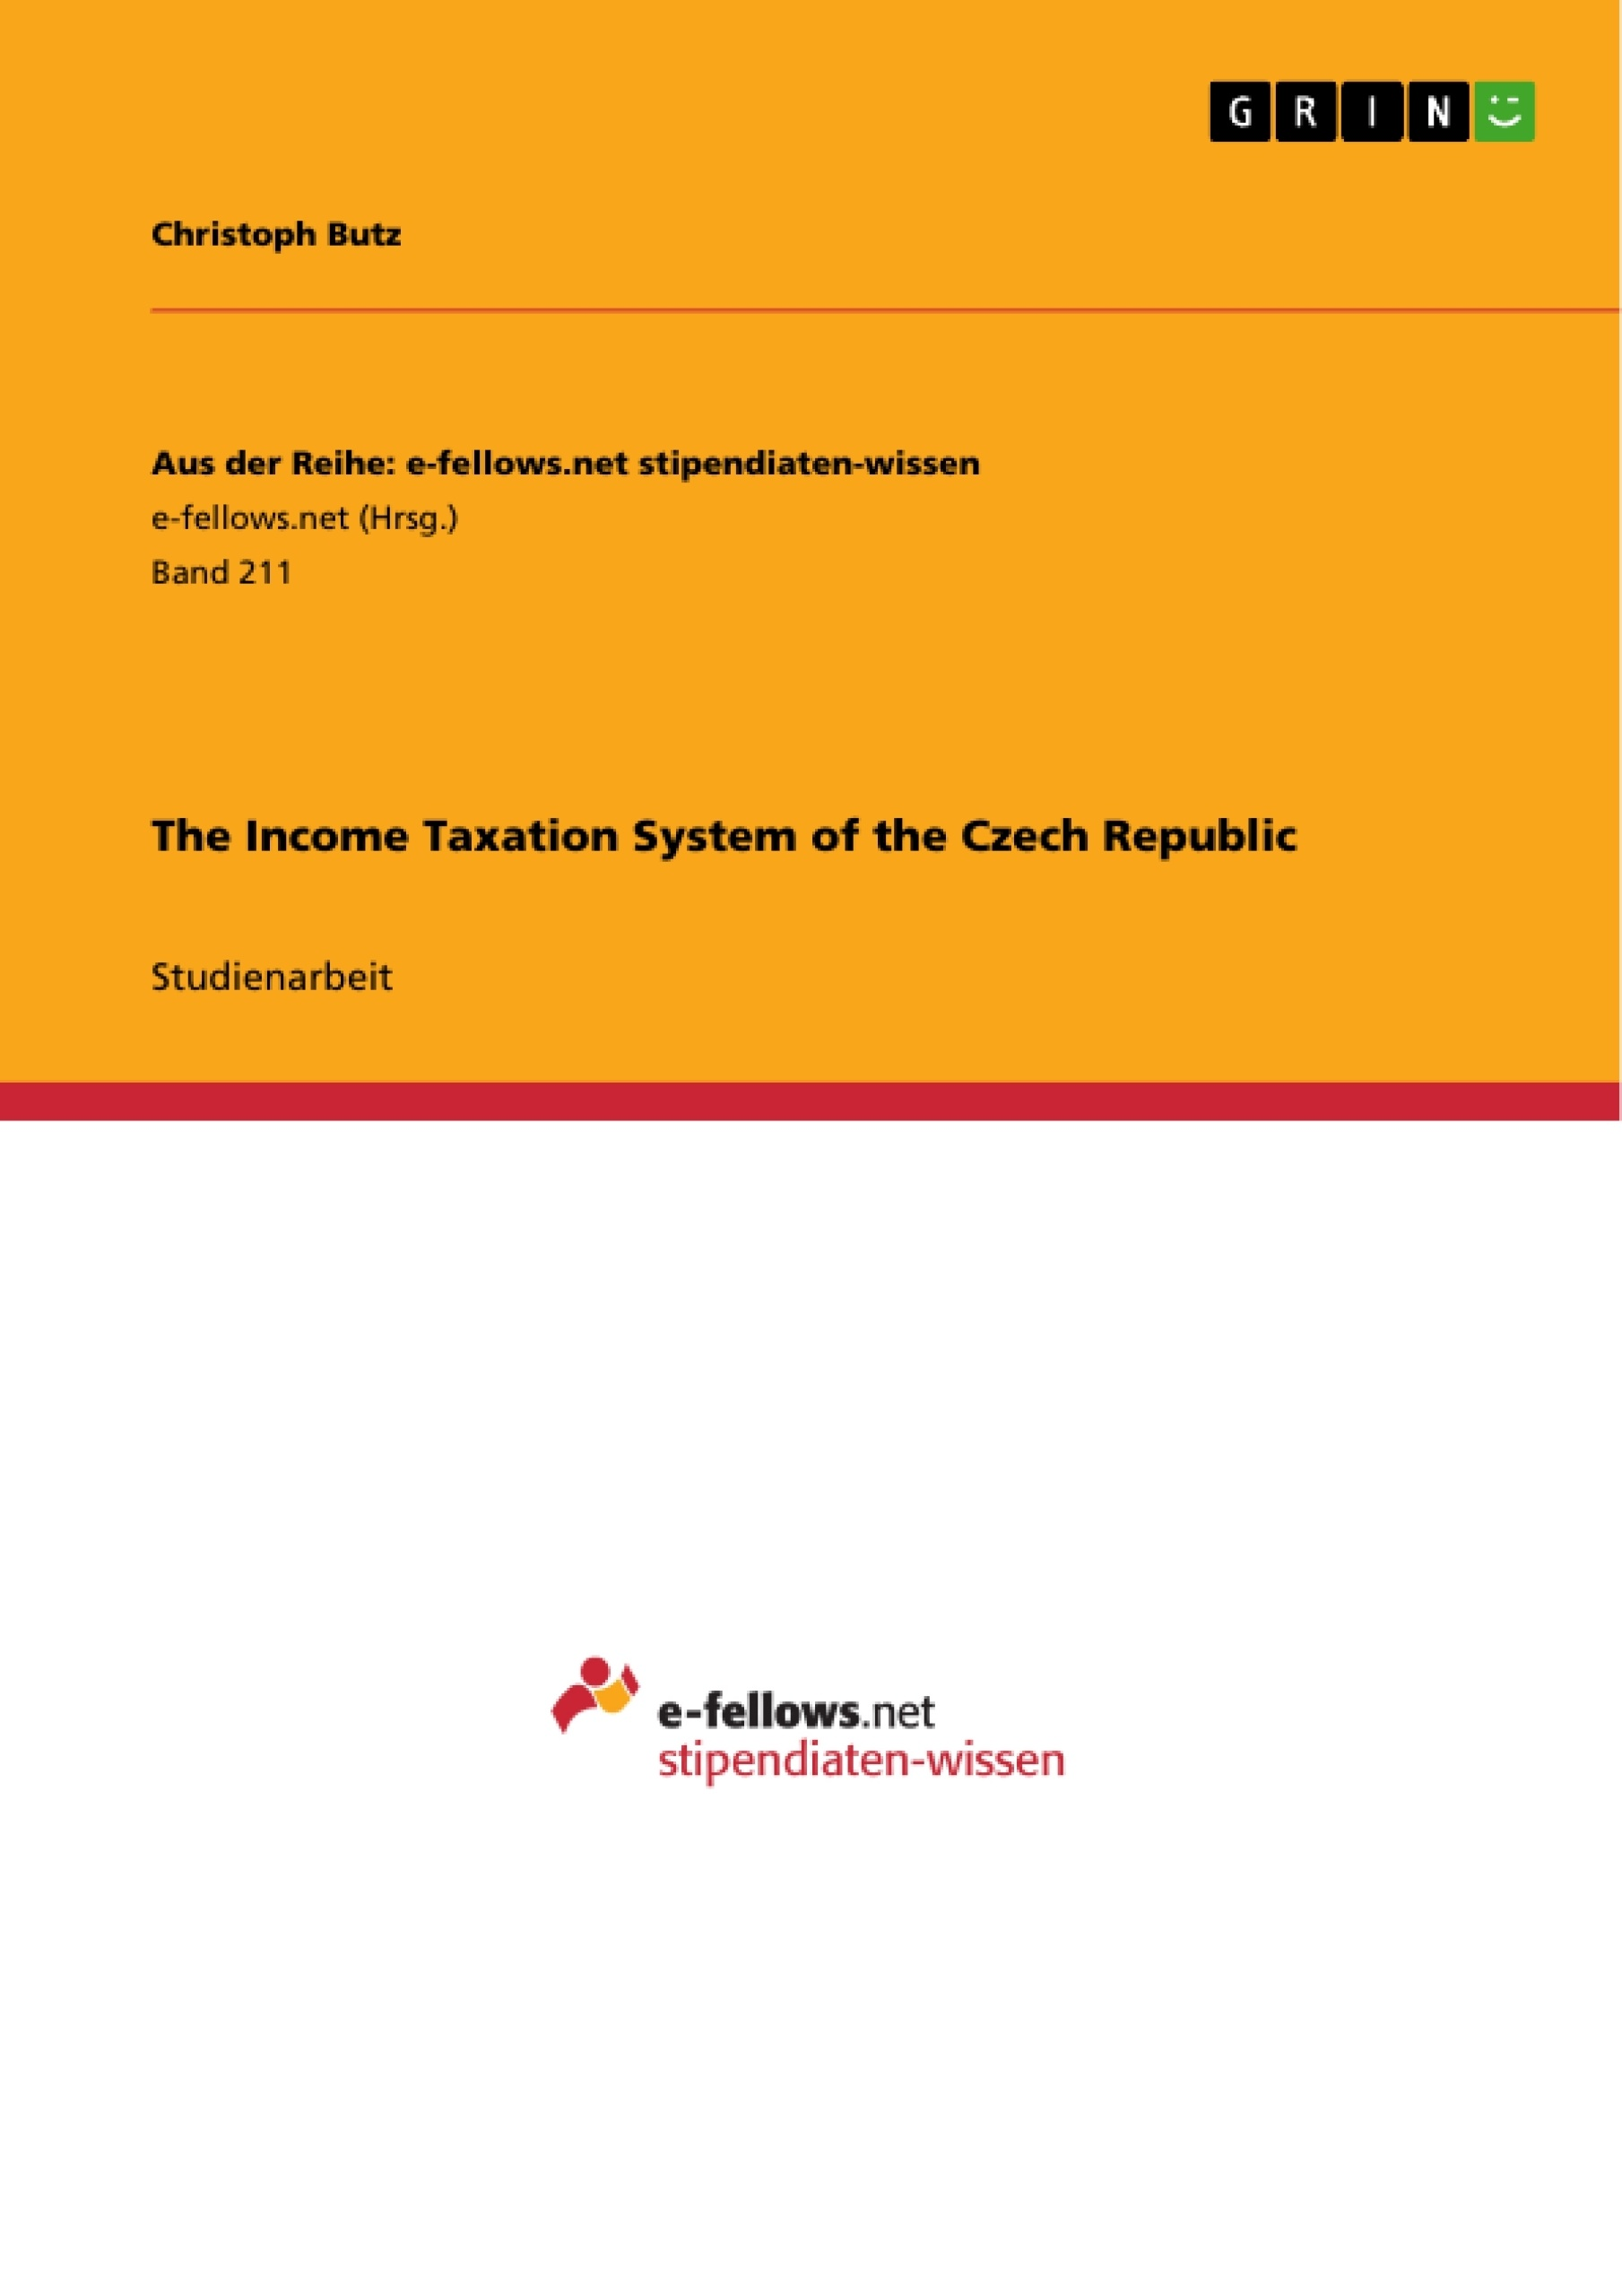 Titel: The Income Taxation System of the Czech Republic